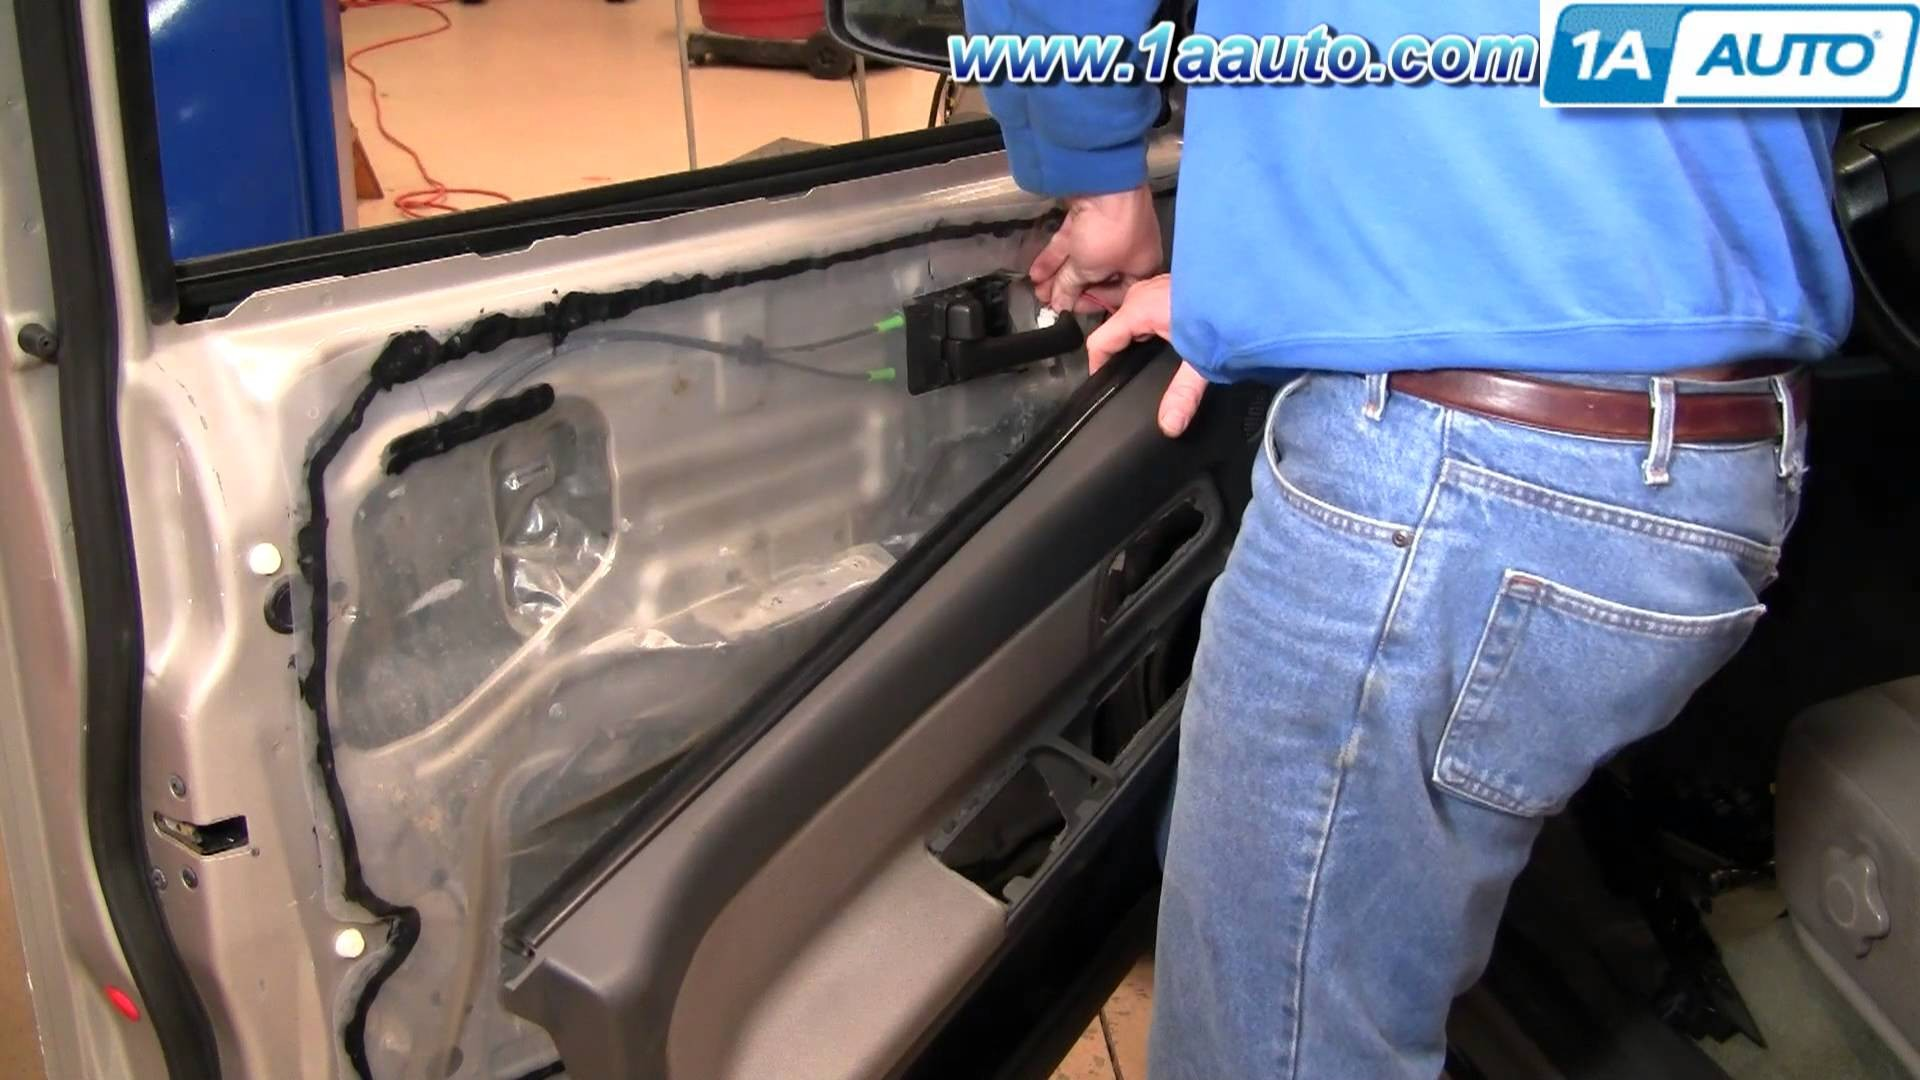 2004 Chevy Colorado Parts Diagram How to Install Replace Remove Front Door Panel Chevy Colorado 04 12 Of 2004 Chevy Colorado Parts Diagram